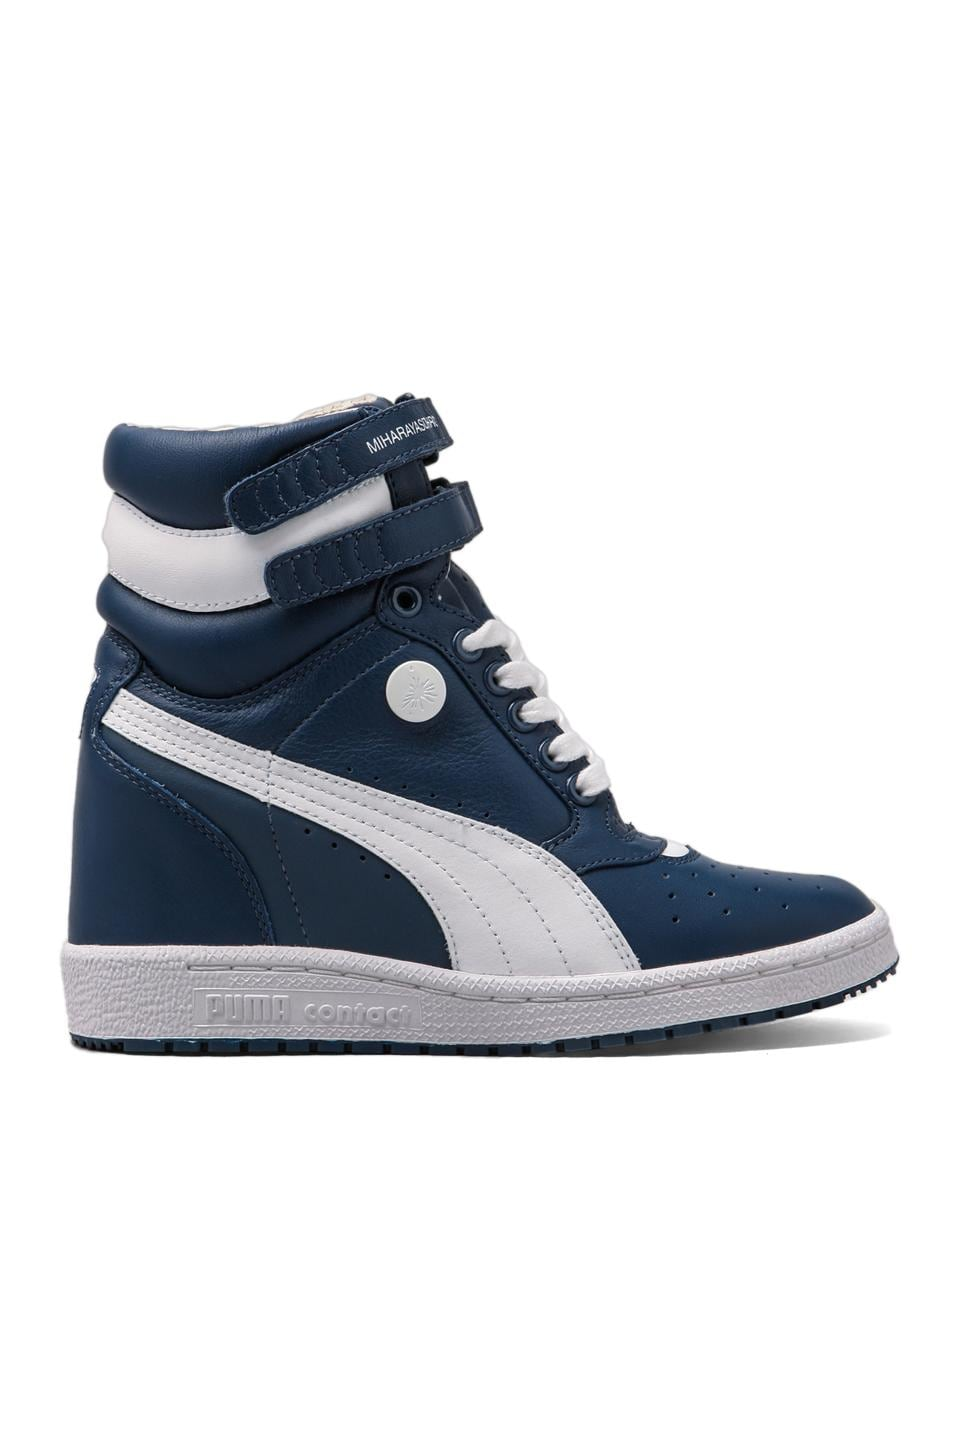 Puma by Mihara MY-66 Sneaker in Dark Denim